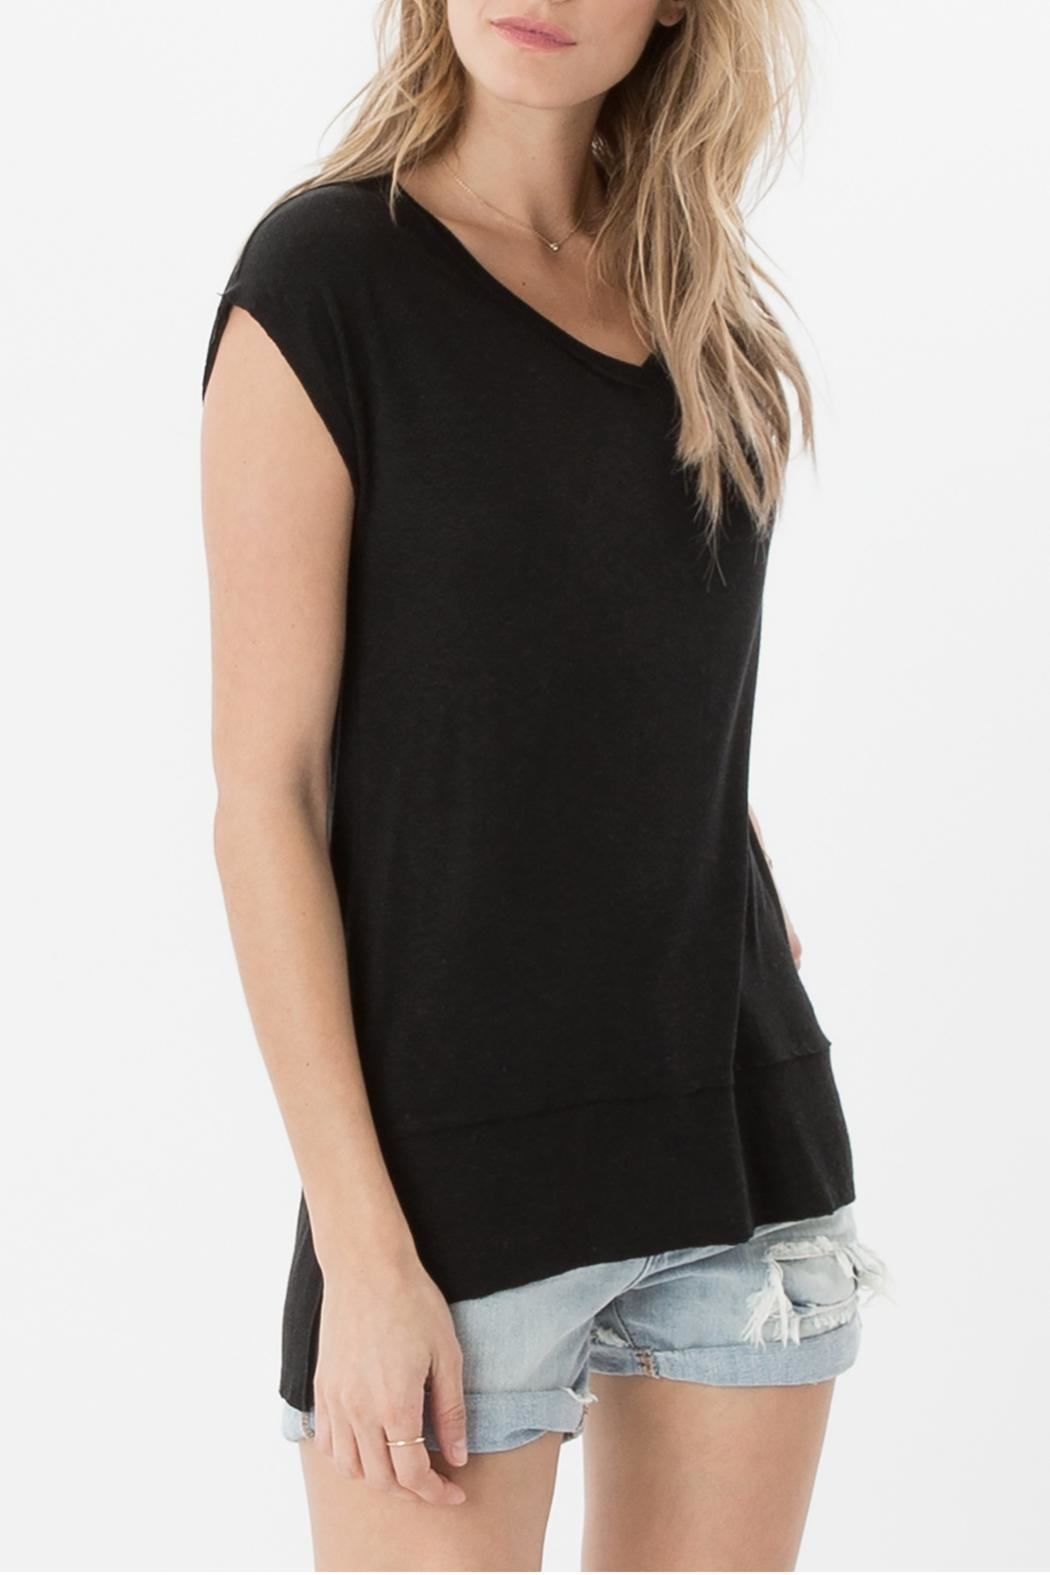 z supply Mia Linen Top - Side Cropped Image